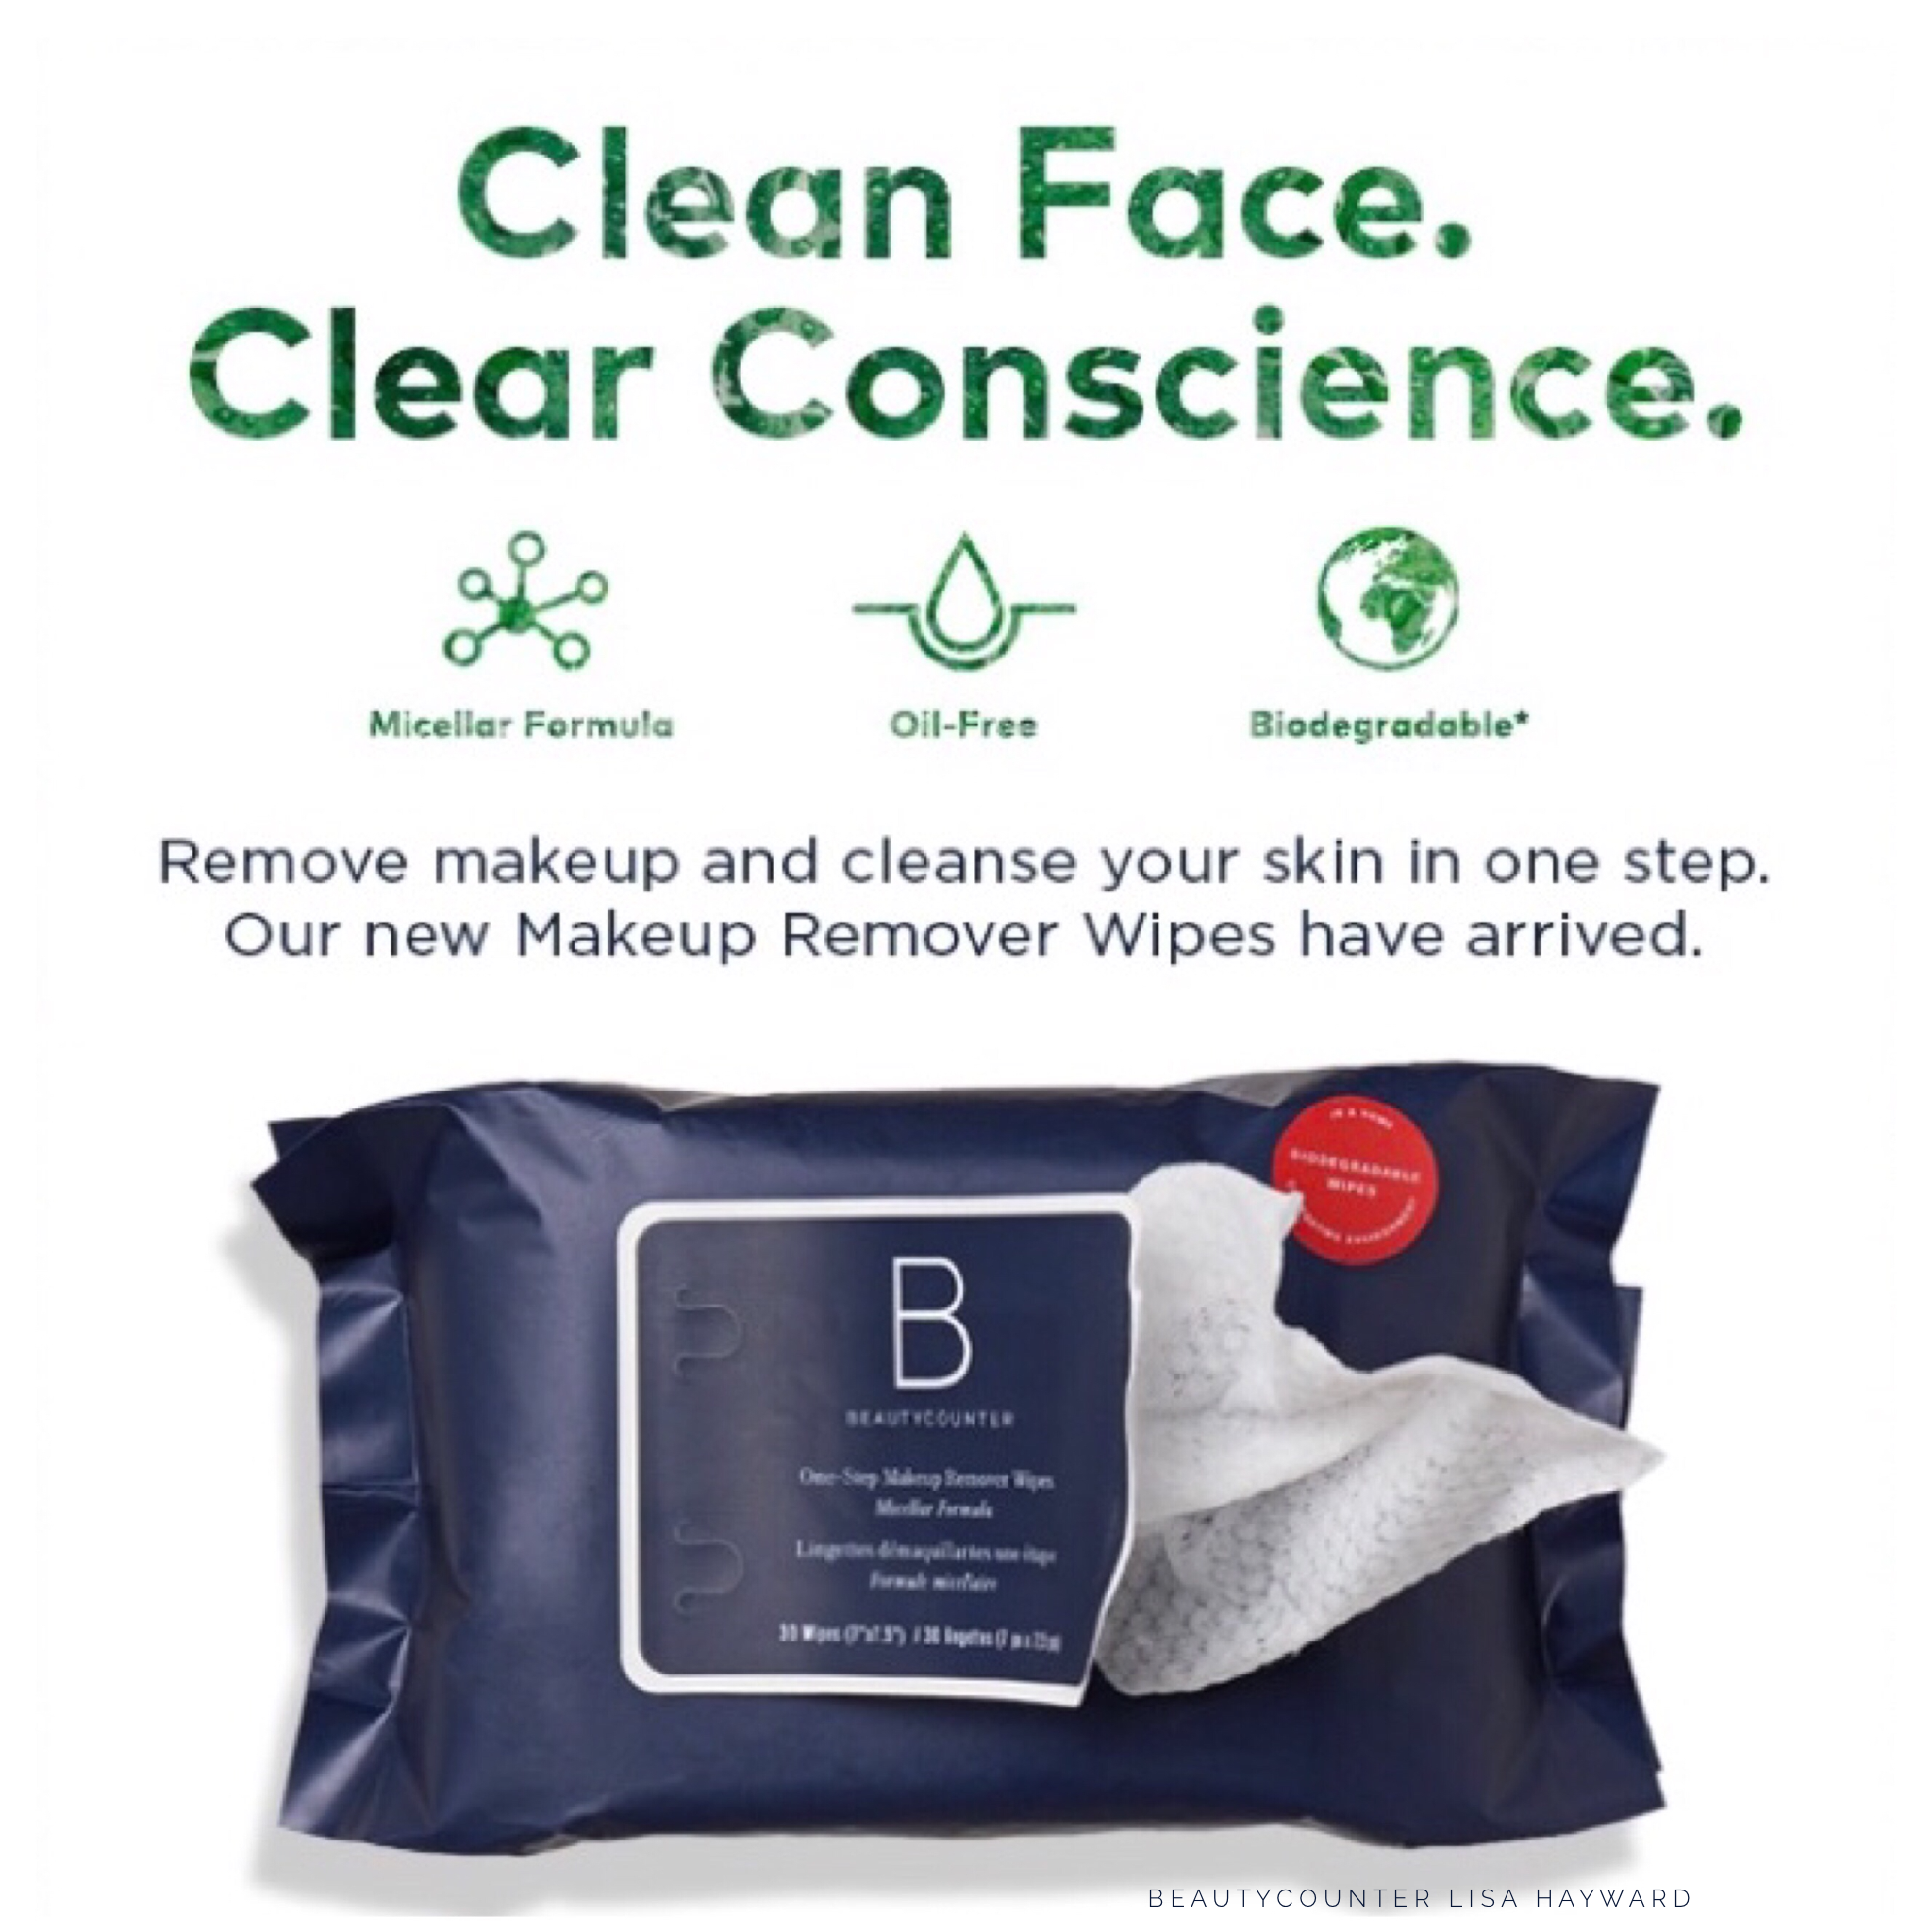 Introducing Beautycounter OneStep Makeup Remover Wipes